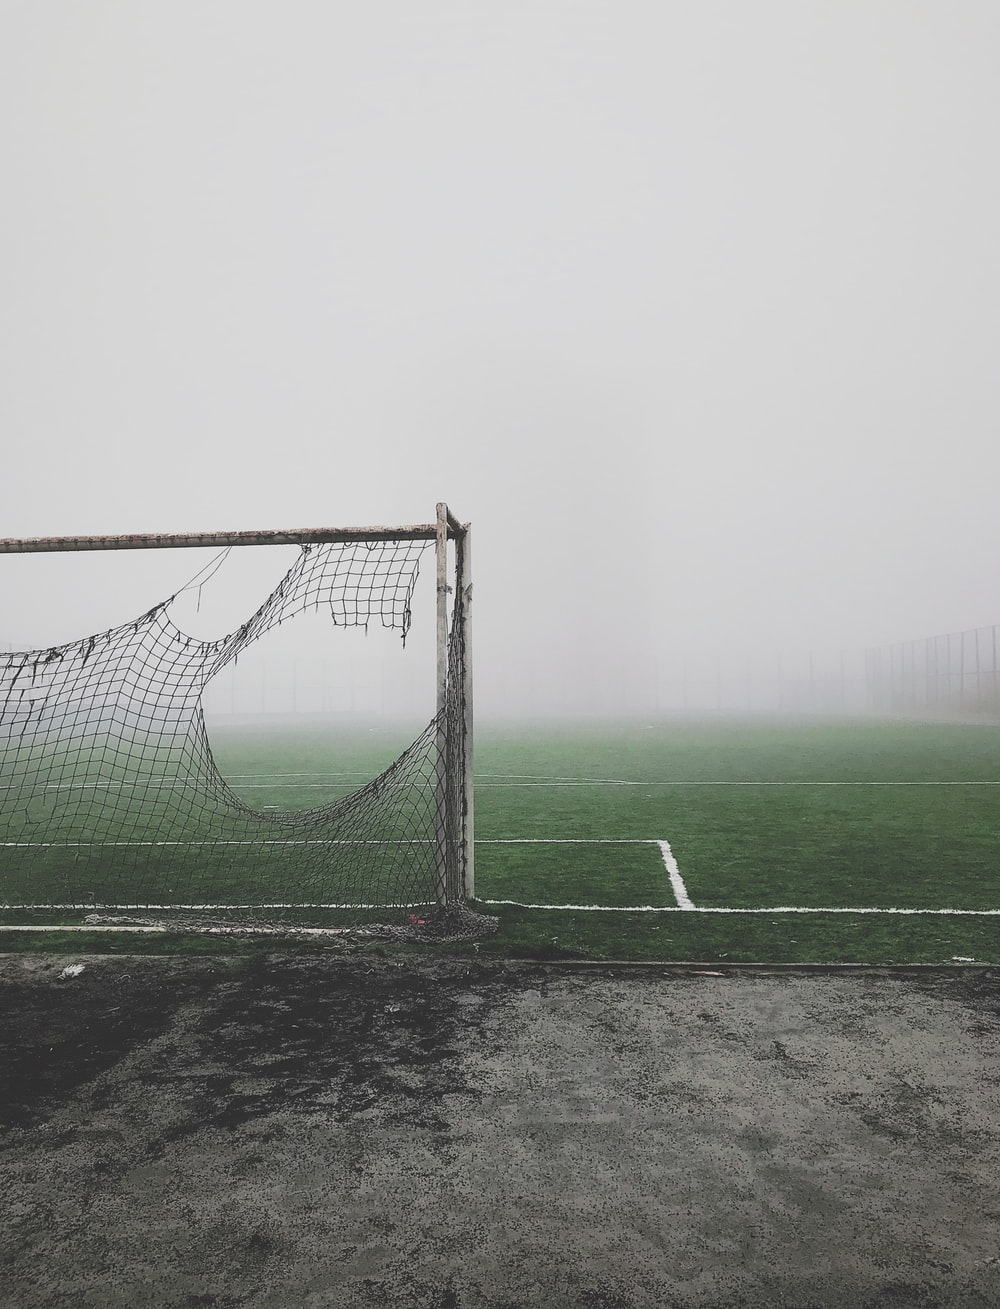 gray and white soccer goal